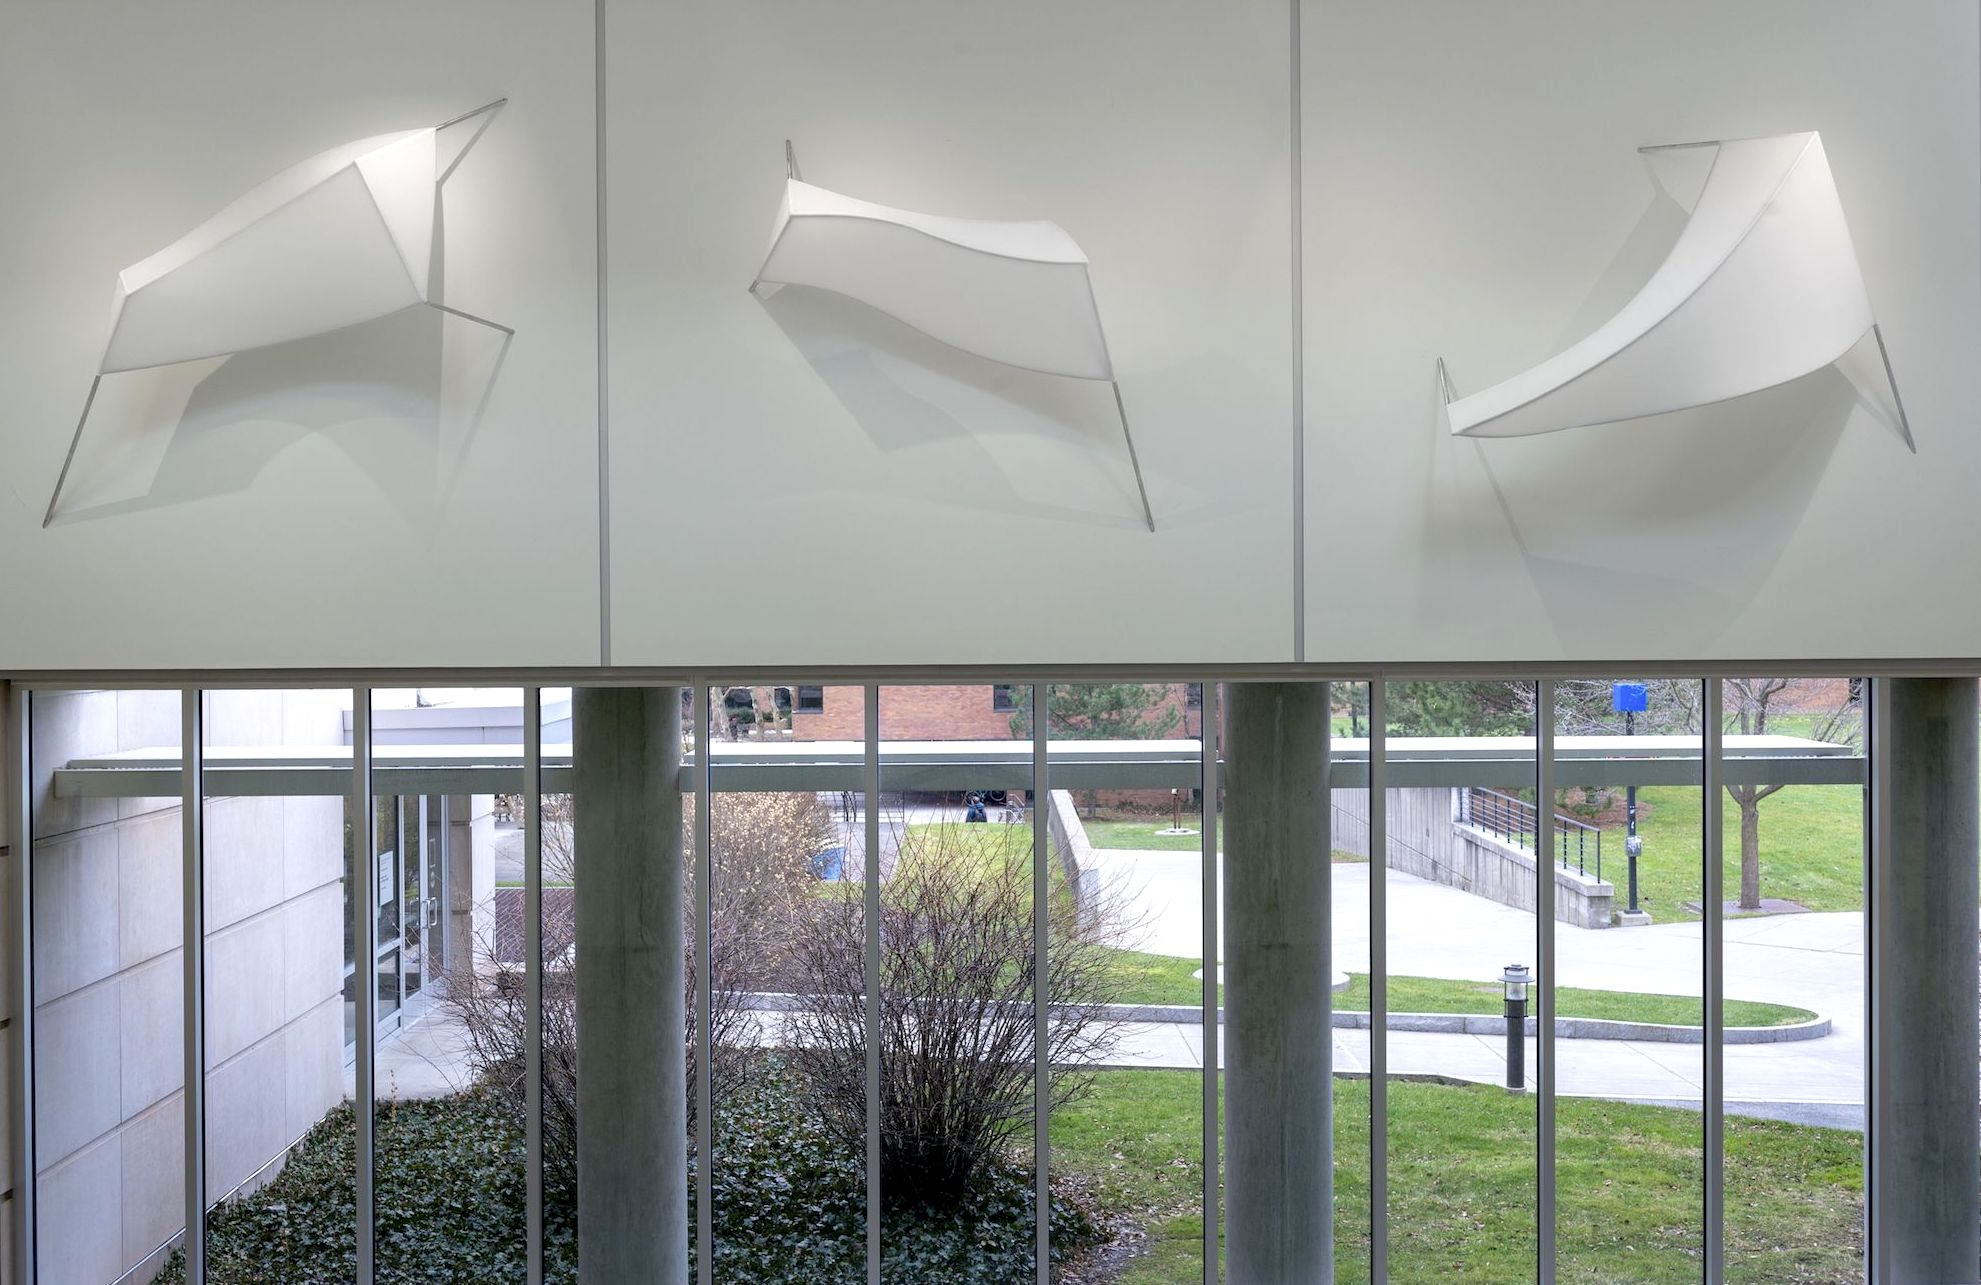 Installation of three sculptural forms made of white fabric stretched over a 3D armature and mounted on the wall.